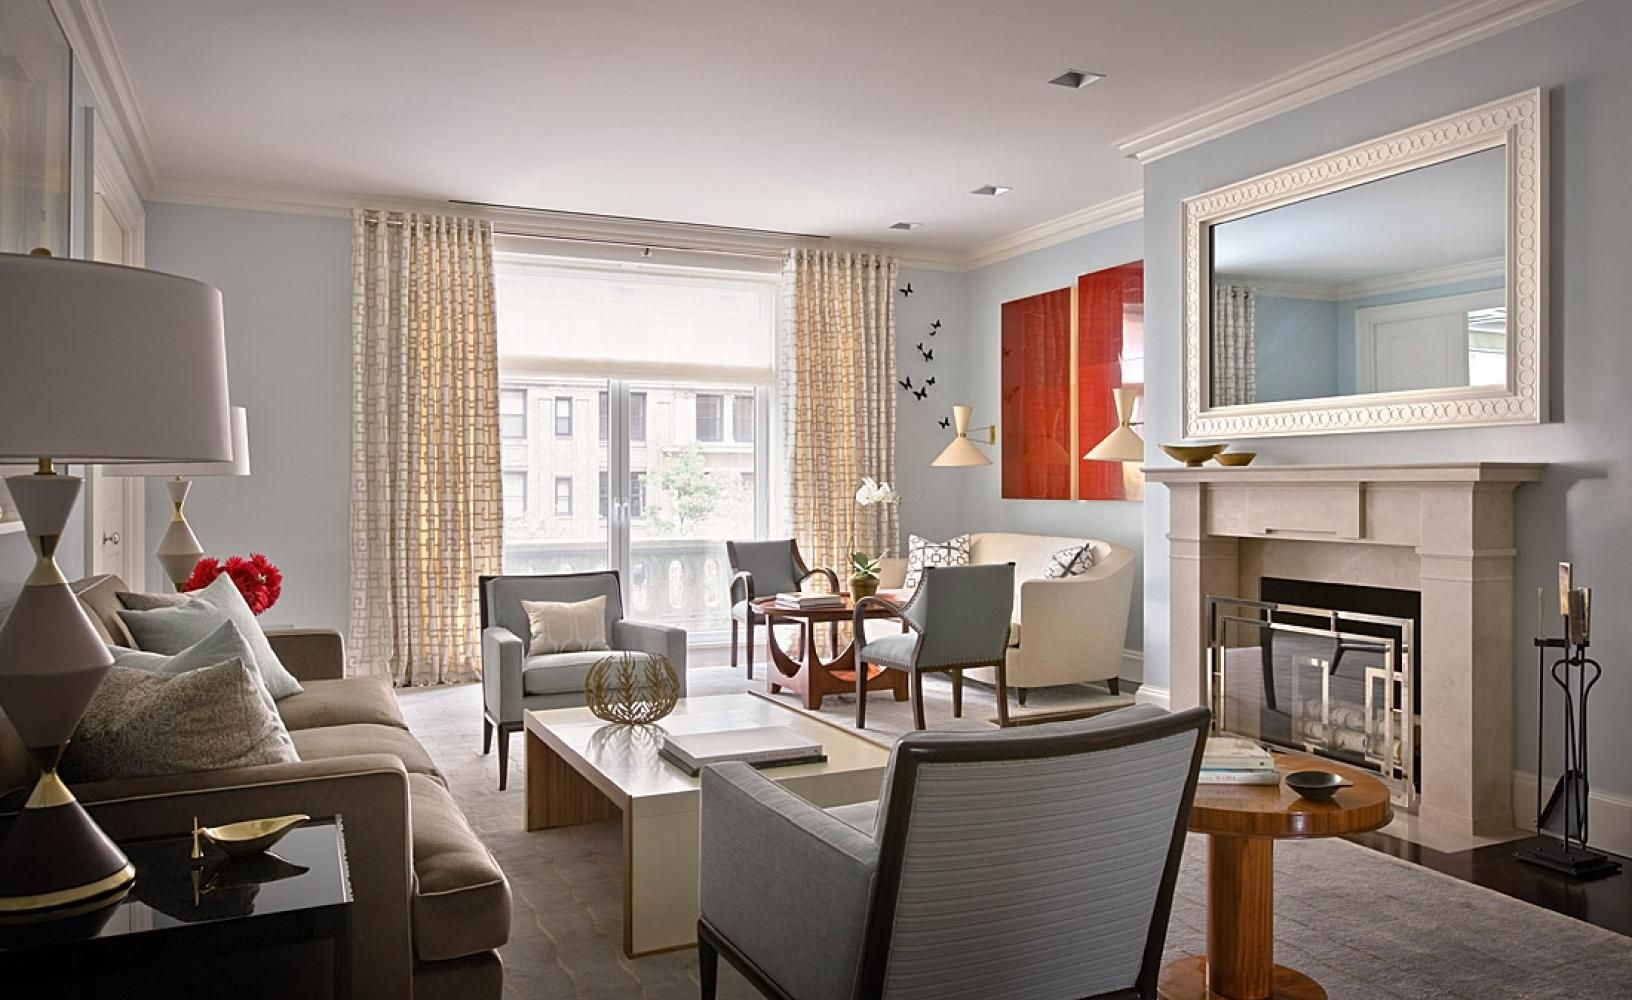 Great Layout For Large Living Room  Park Ave Apartment New York Interesting Apt Living Room Decorating Ideas Decorating Design